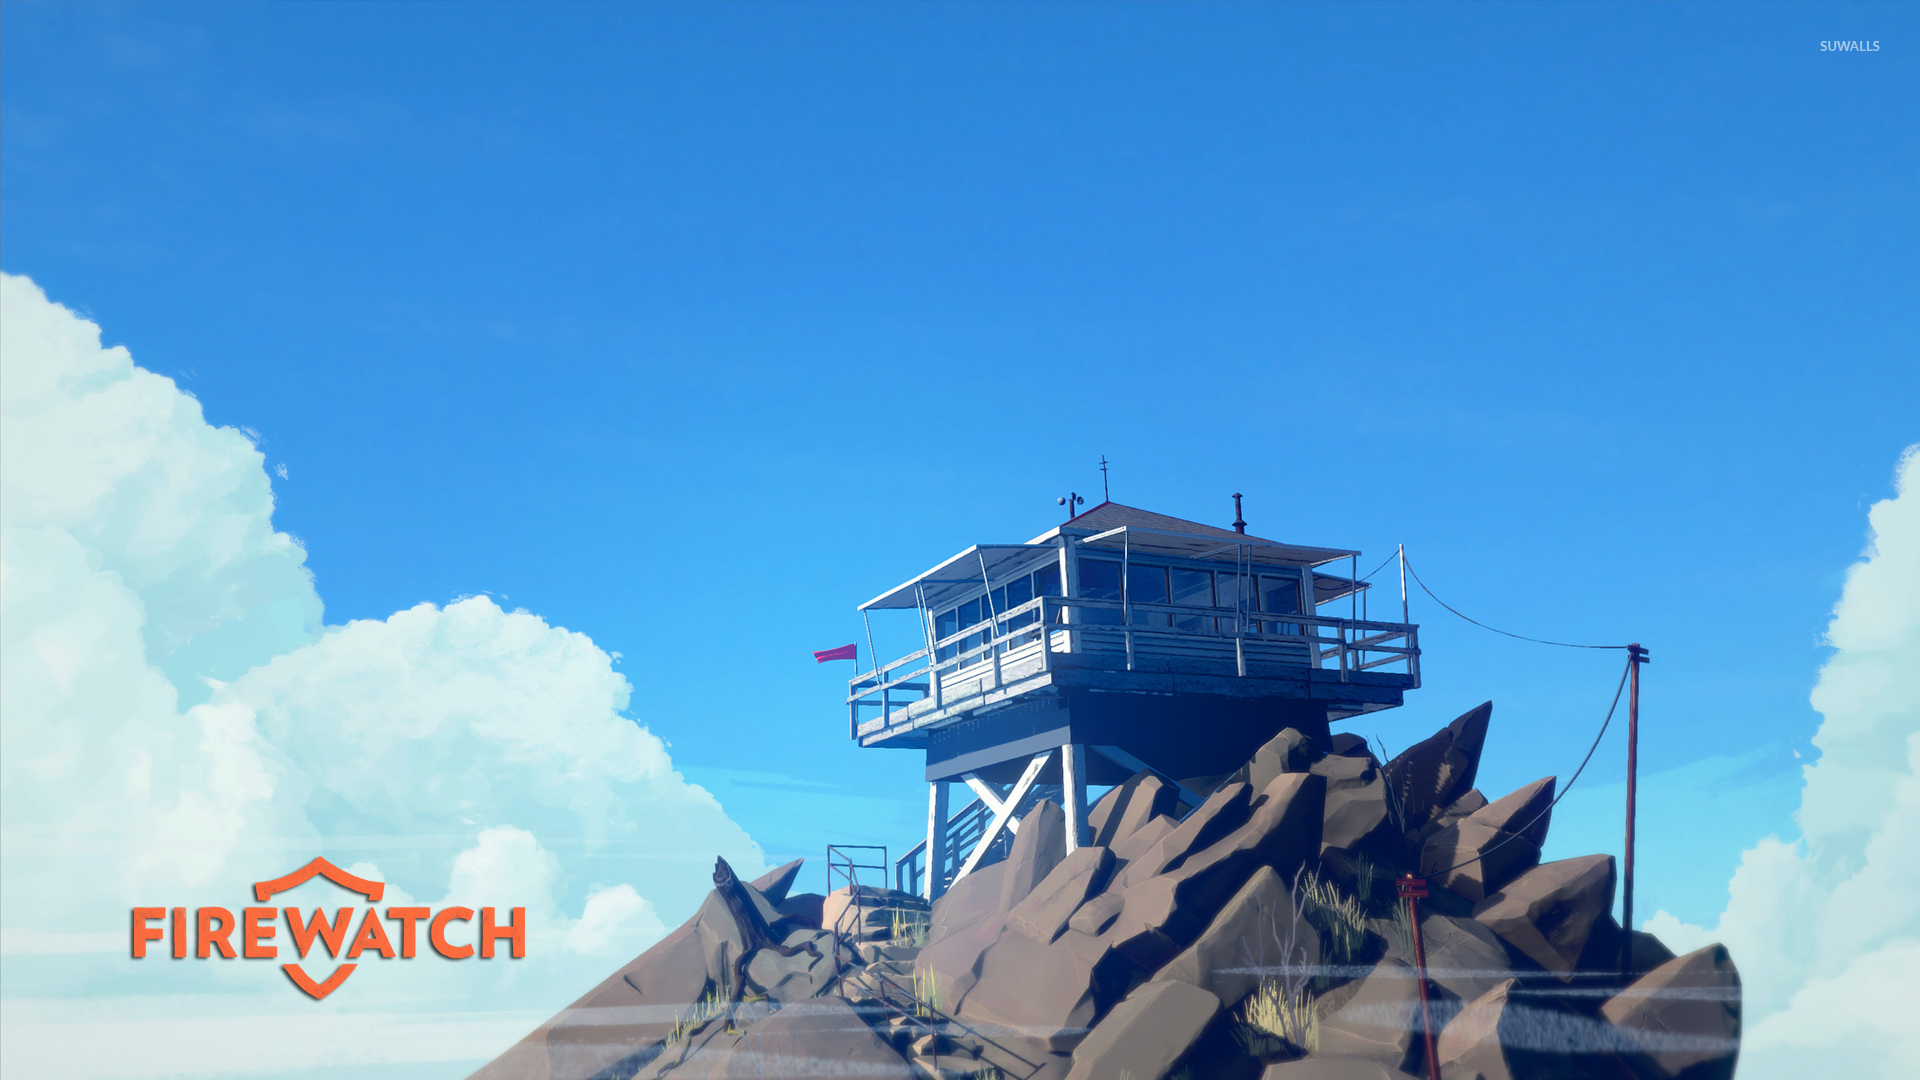 40k Quotes Wallpapers Fire Lookout Tower On The Cliff Firewatch Wallpaper